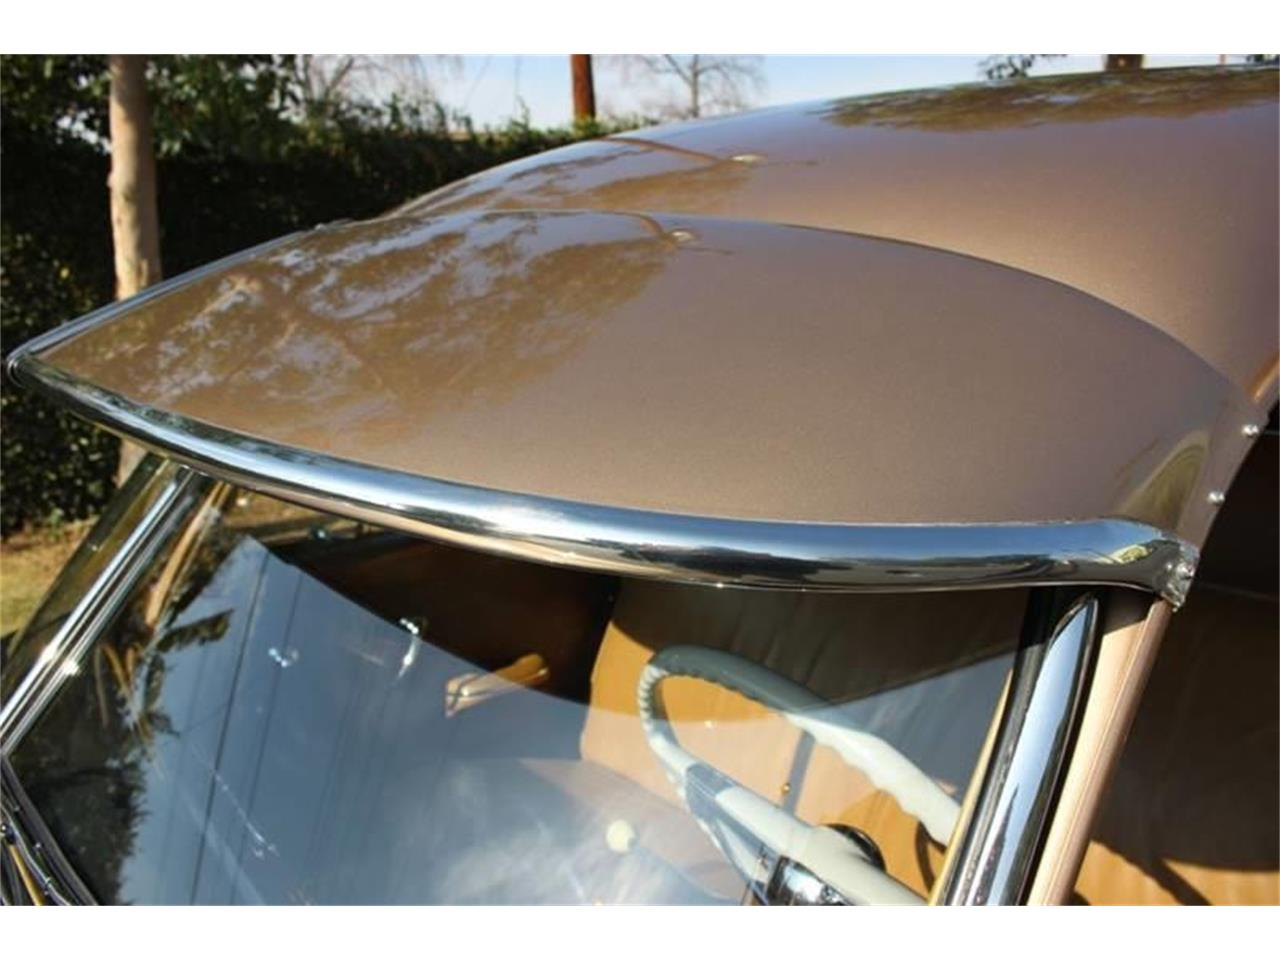 1950 Chevrolet Styleline Deluxe for sale in La Verne, CA – photo 19